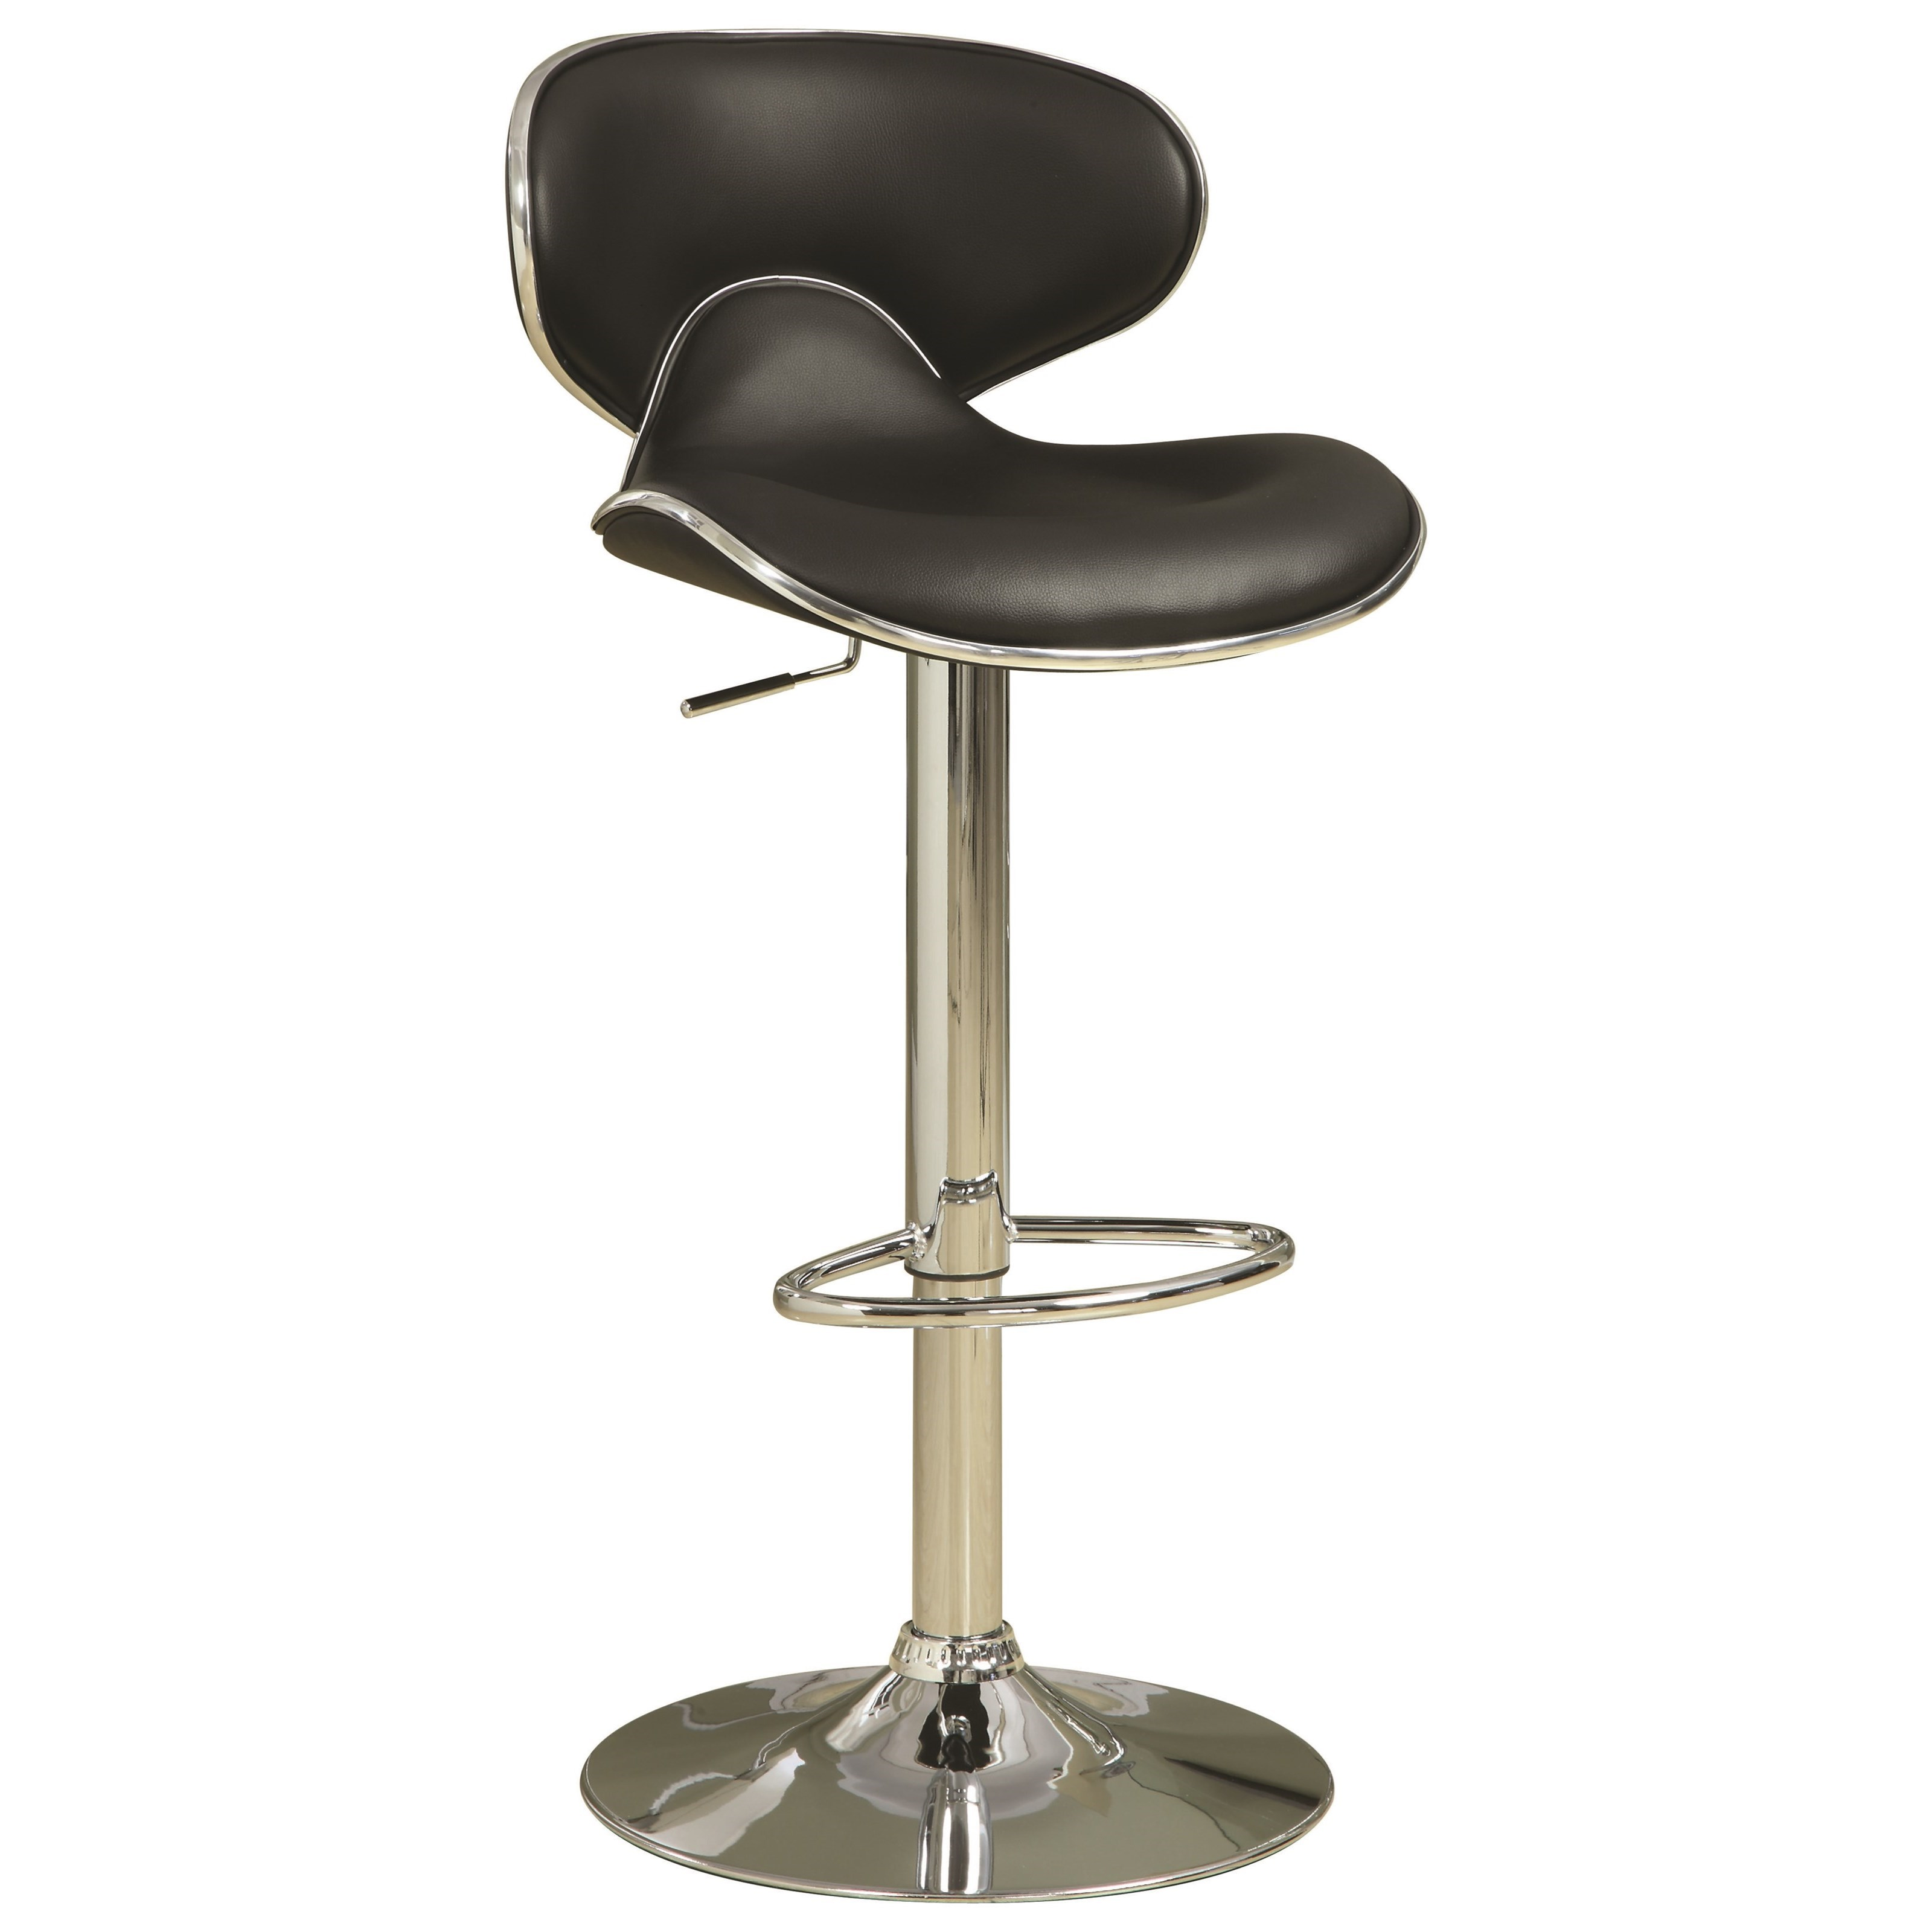 Coaster Dining Chairs And Bar Stools 120359 Adjustable